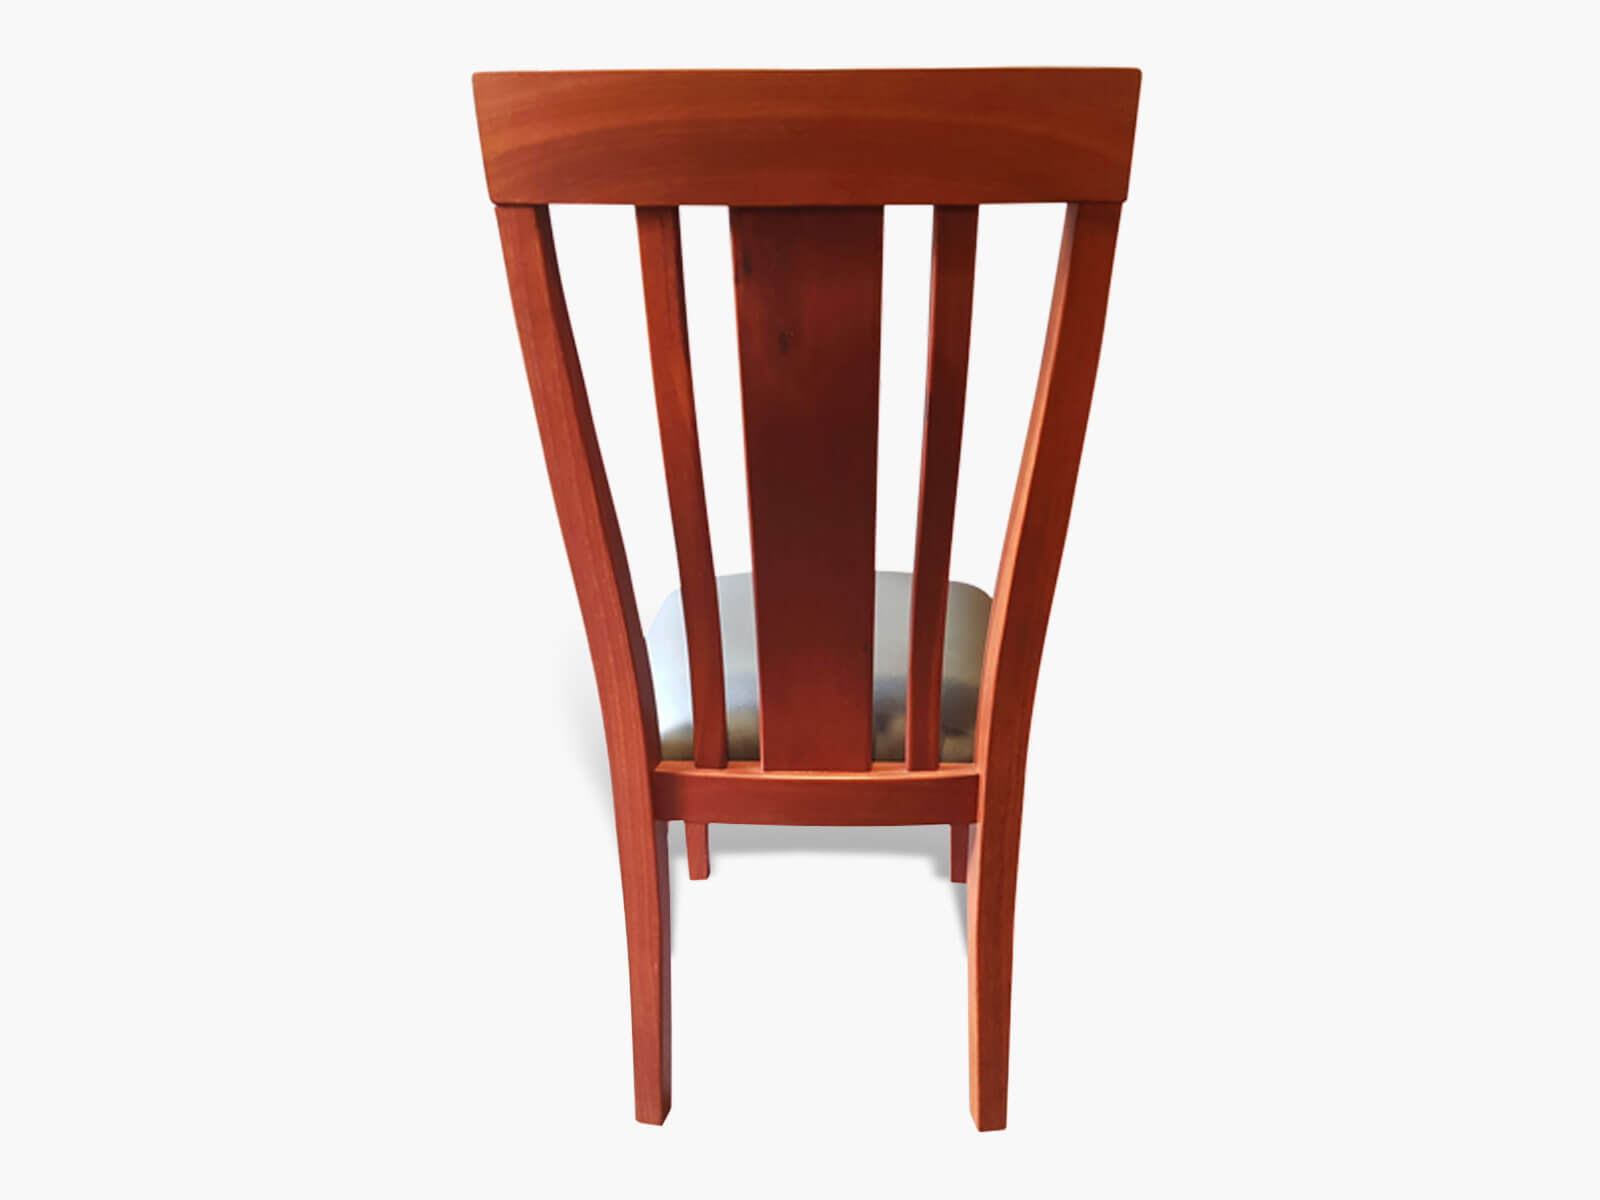 High Bar Tables Perth Port Hedland Dining Chair Jarrimber